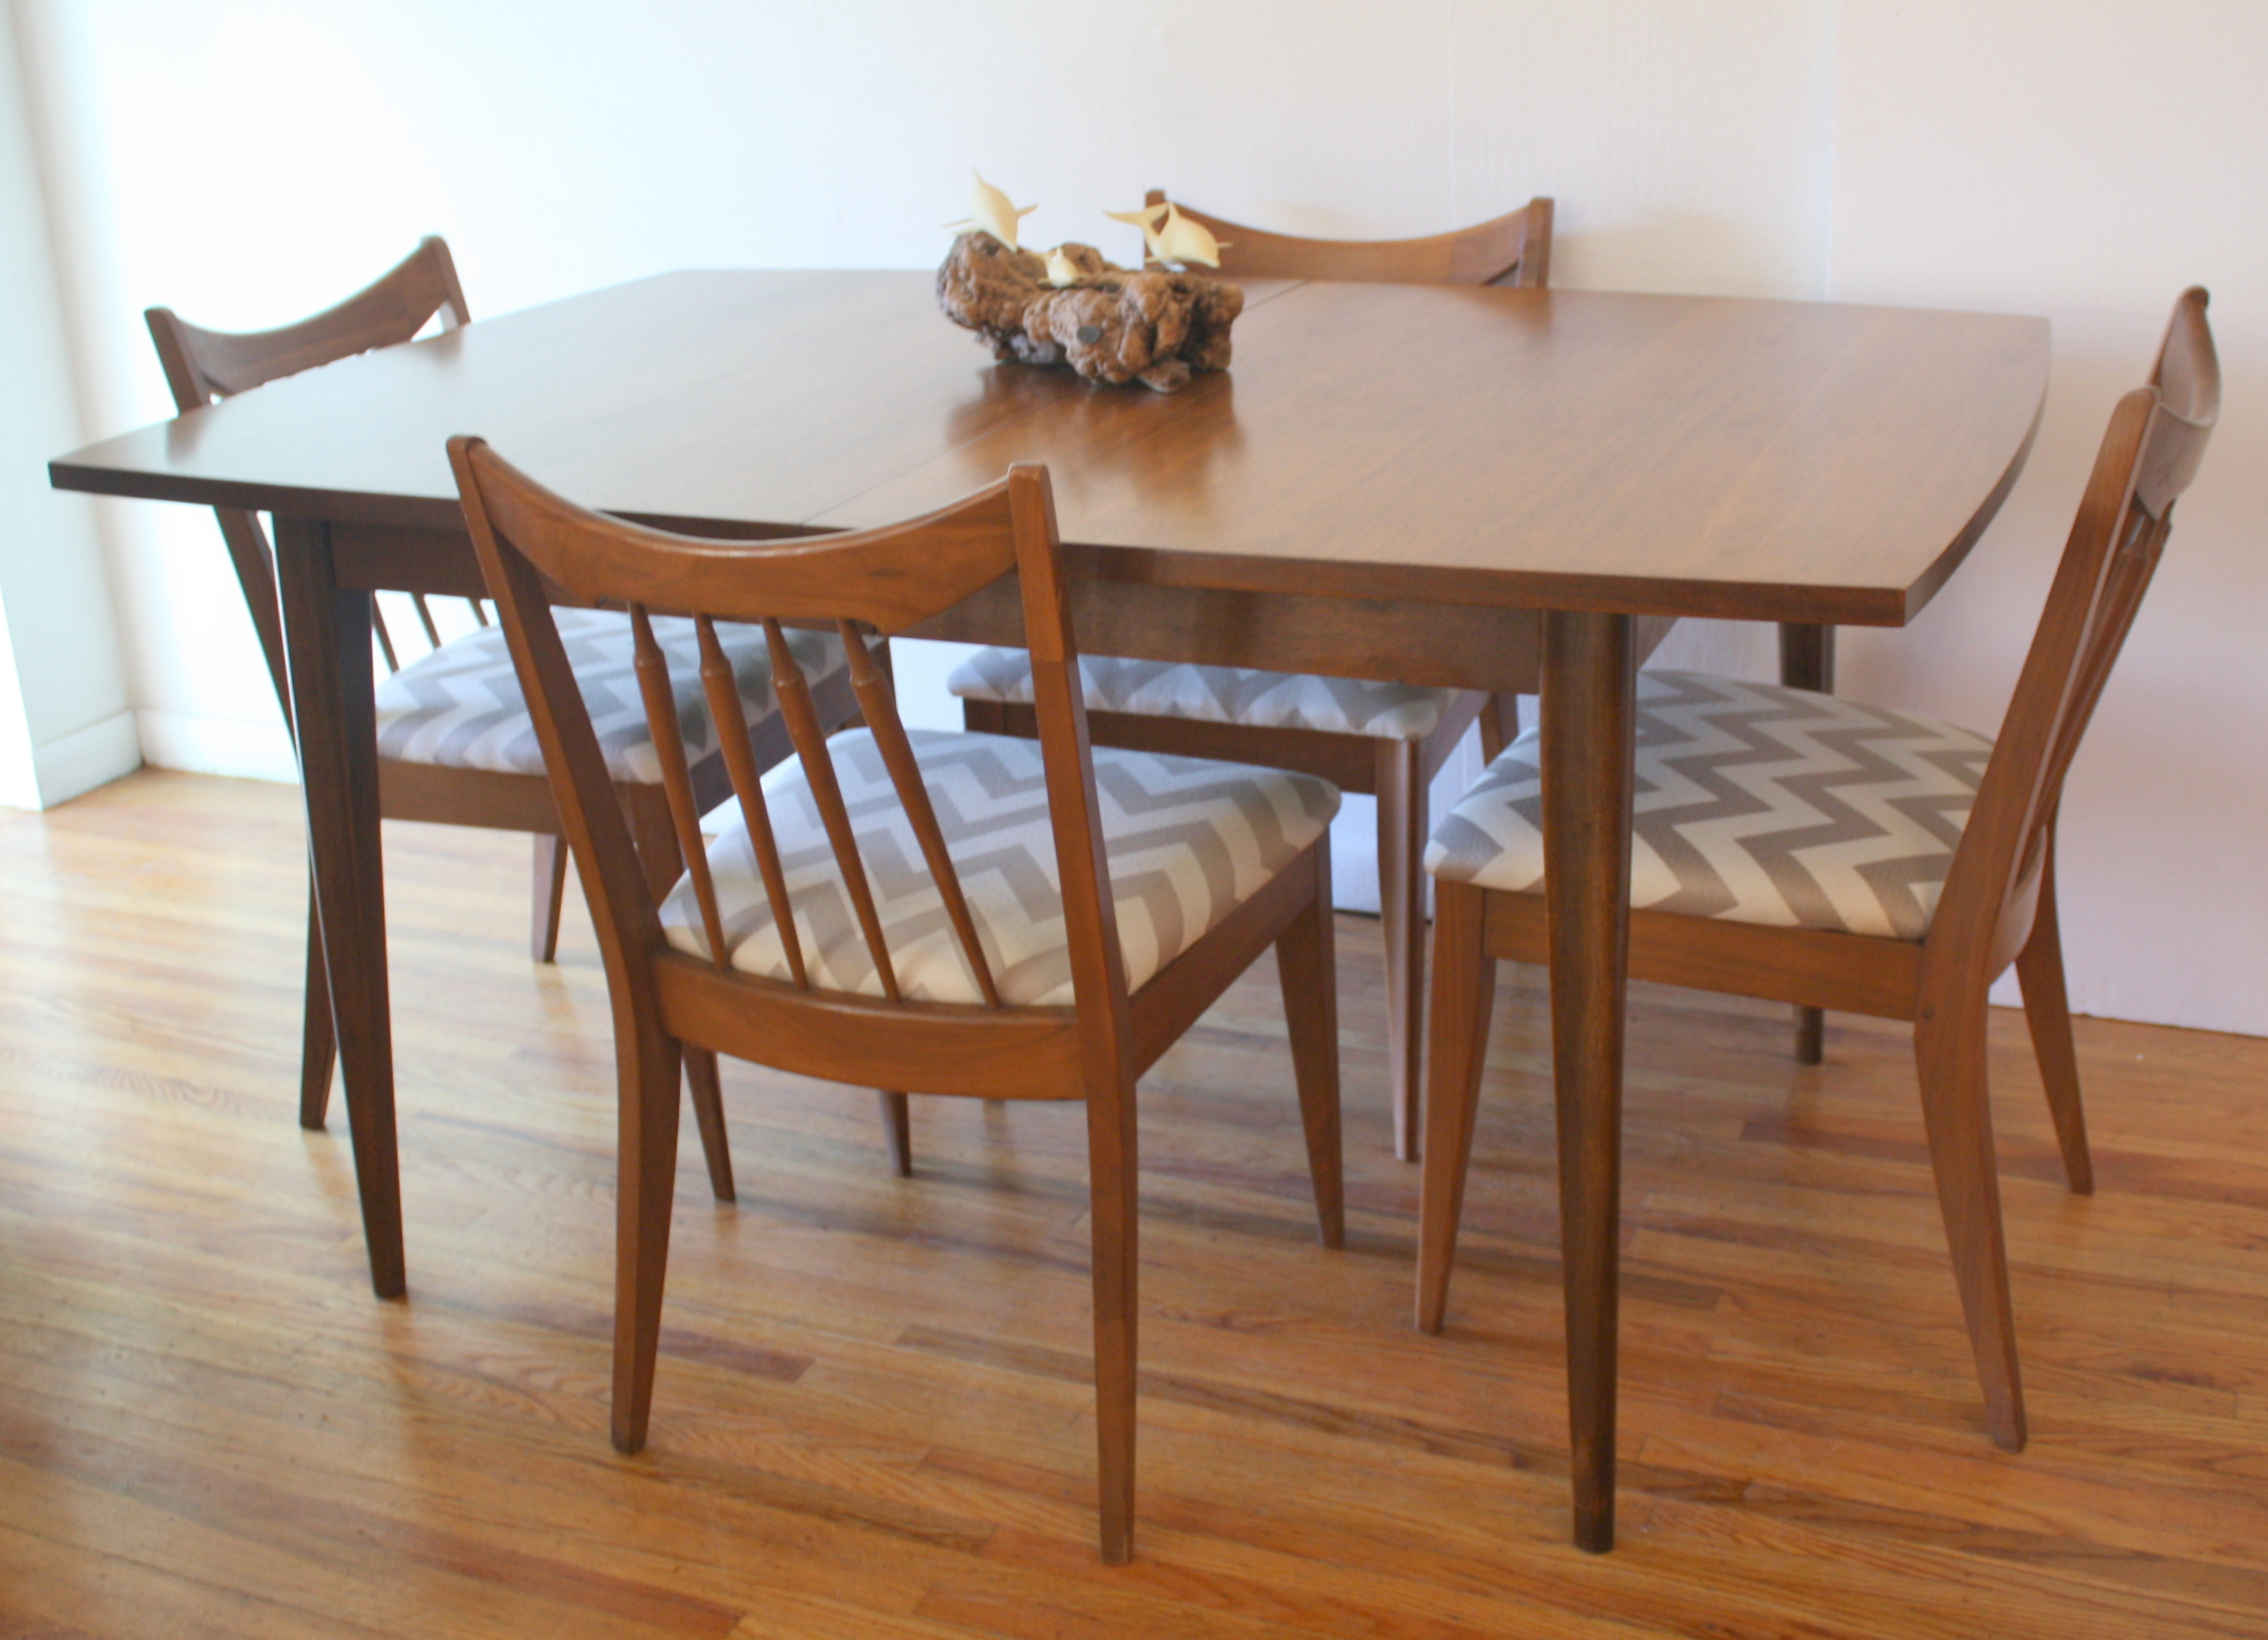 Broyhill Brasilia dining table with chairs